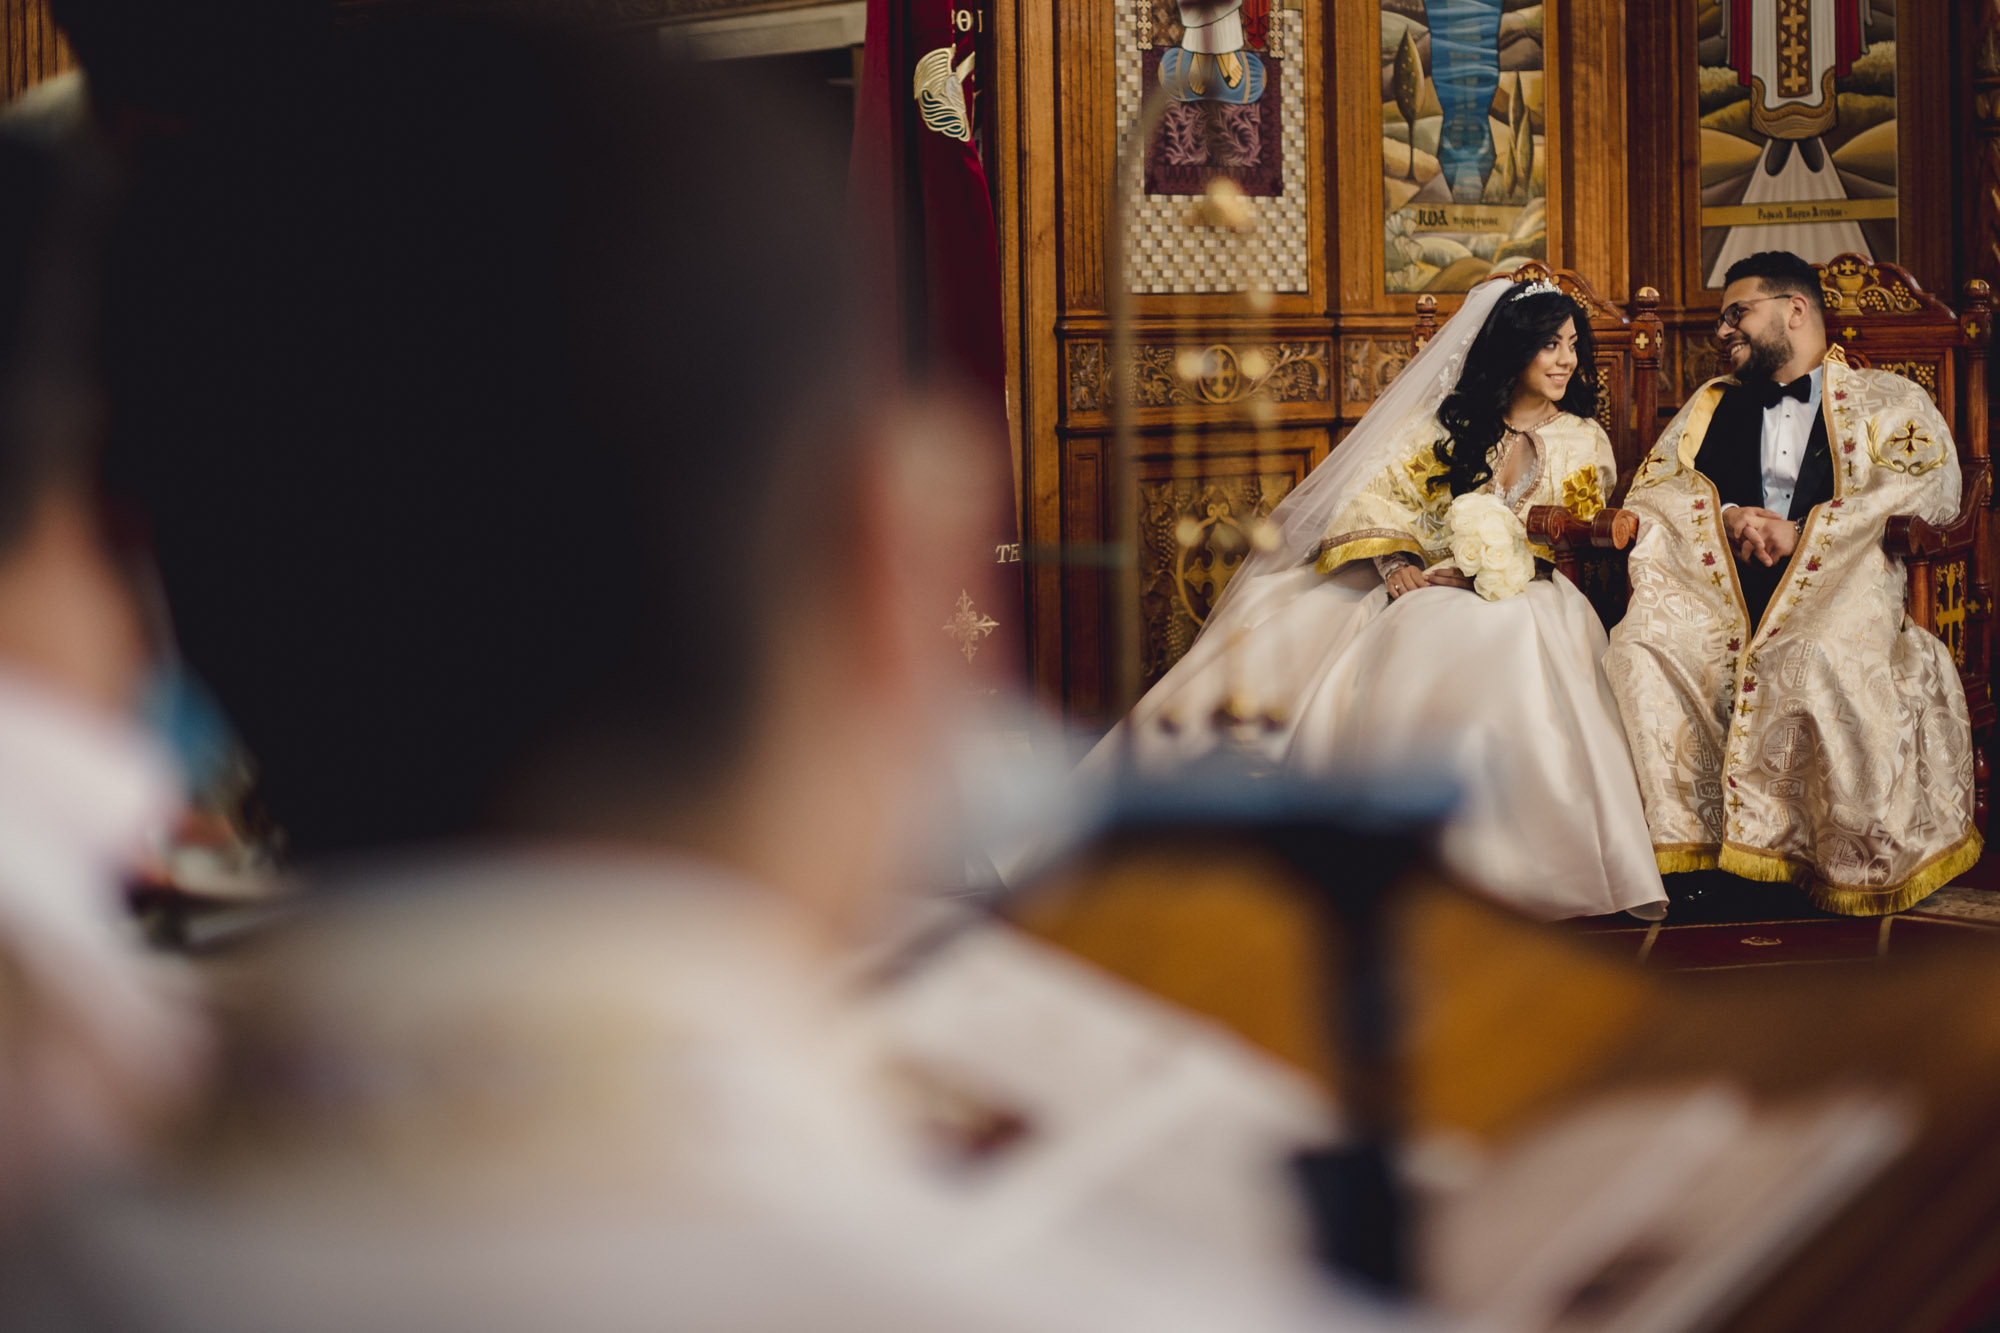 Bride and groom in religious ceremonial robe - photo by MIKI Studios